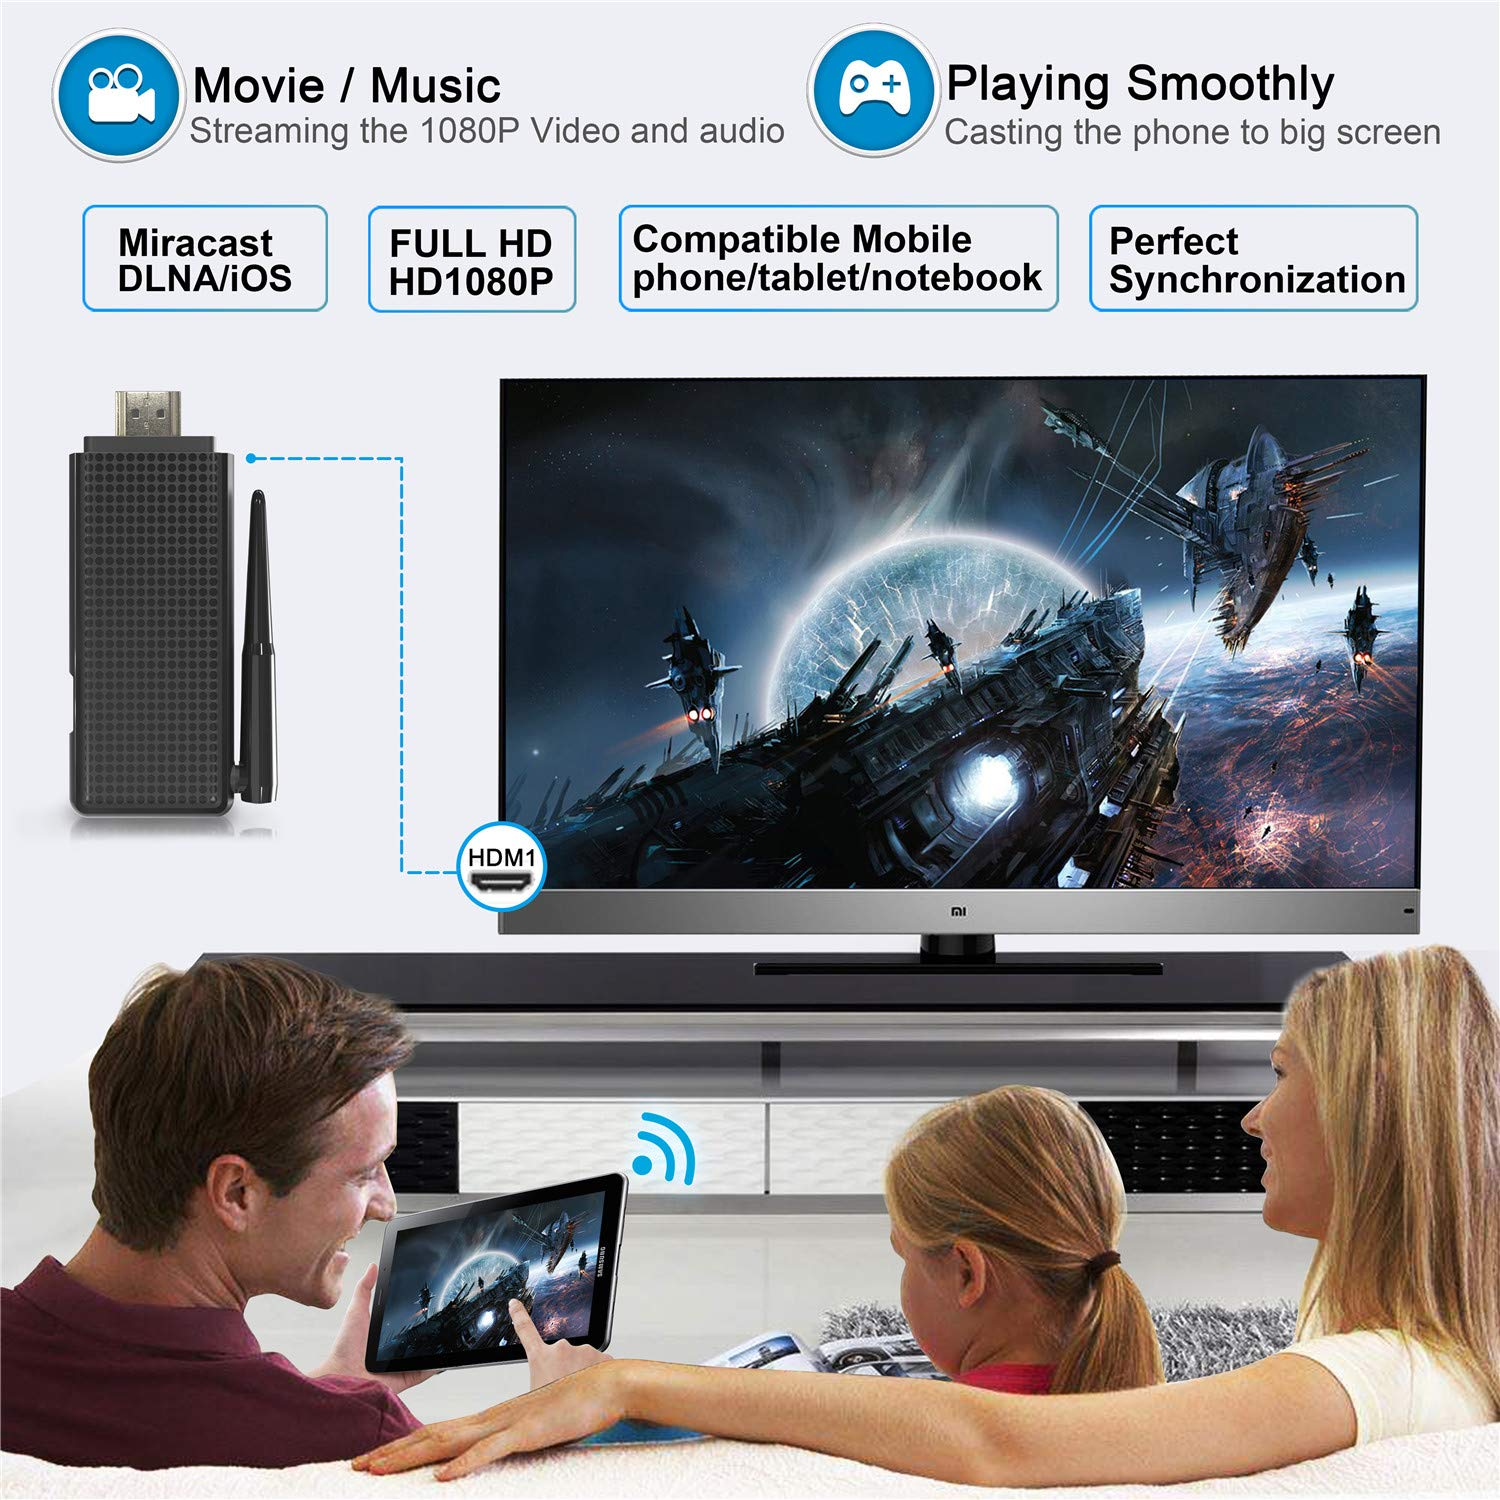 VICTONY Wireless And Wired 2 In 1 1080P WiFi Display Dongle, for TV,High Speed HDMI Miracast Dongle for Android/iOS Smartphone,Tablet,iPhone,iPad,Support AirPlay/Miracast / DLNA/Screen Mirroring by VICTONY (Image #7)